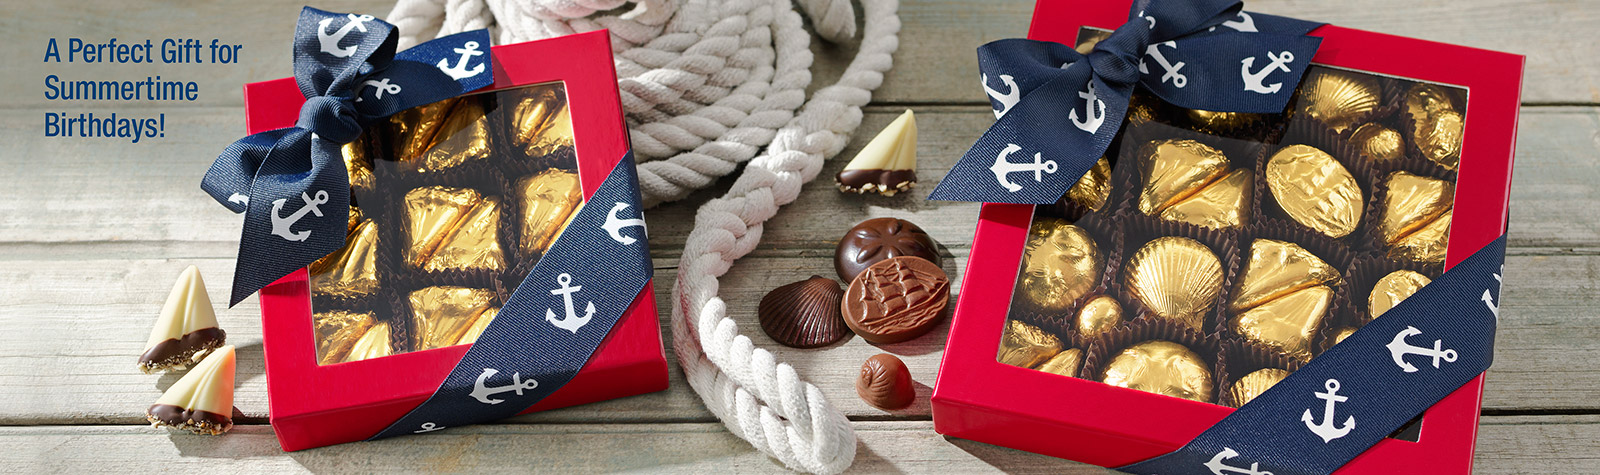 Anchors Aweigh - Harbor Sweets